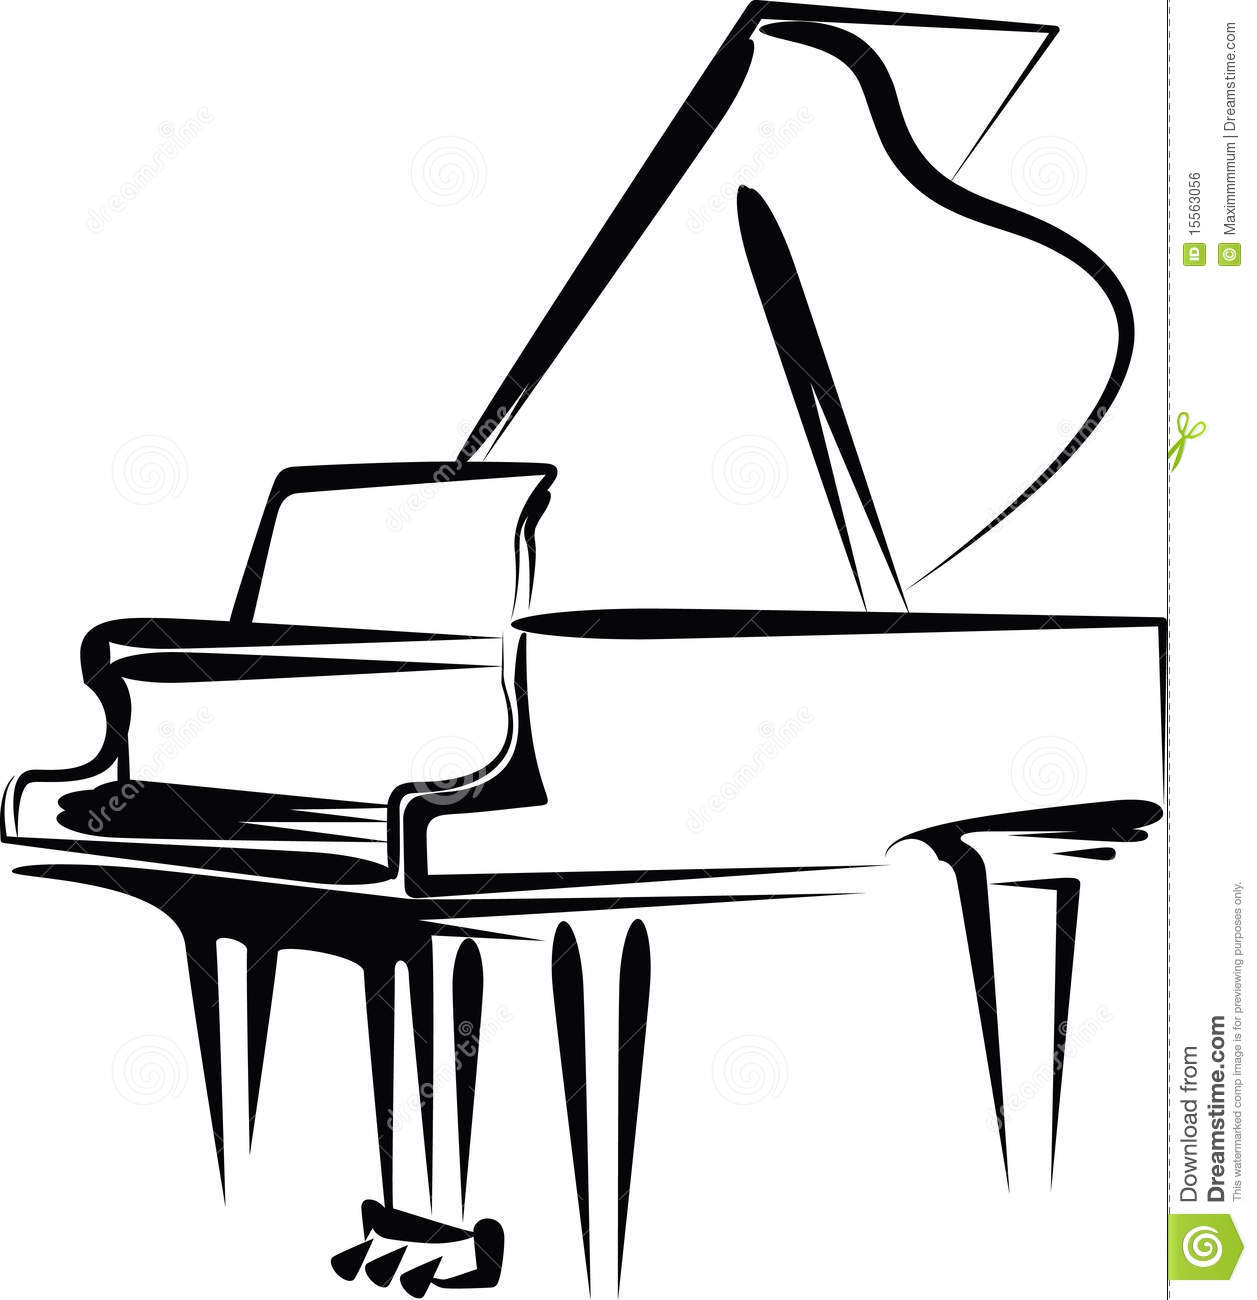 grand piano silhouette at getdrawings com free for personal use rh getdrawings com free clipart piano recital free piano clipart black and white